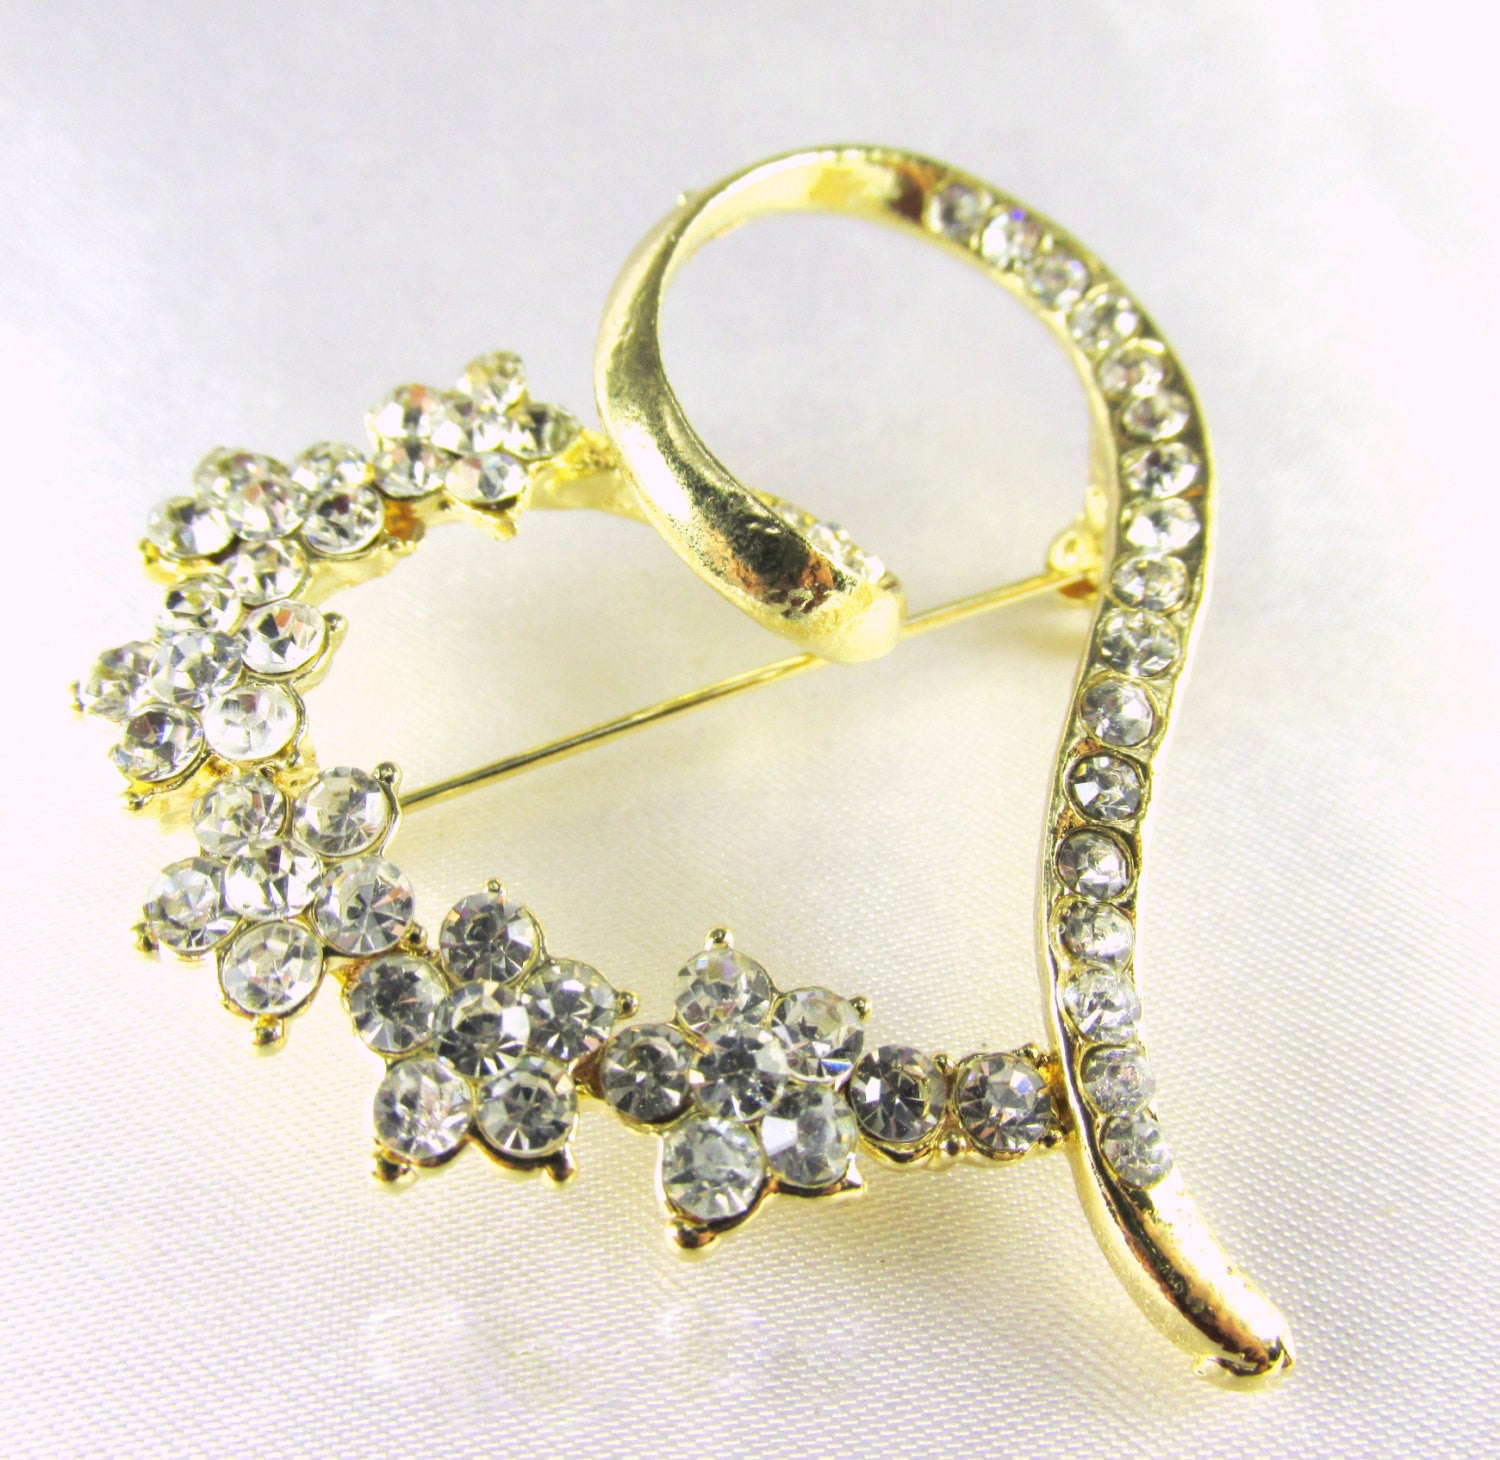 Gold Heart Brooch with Clear Crystals - Odyssey Cache - 1